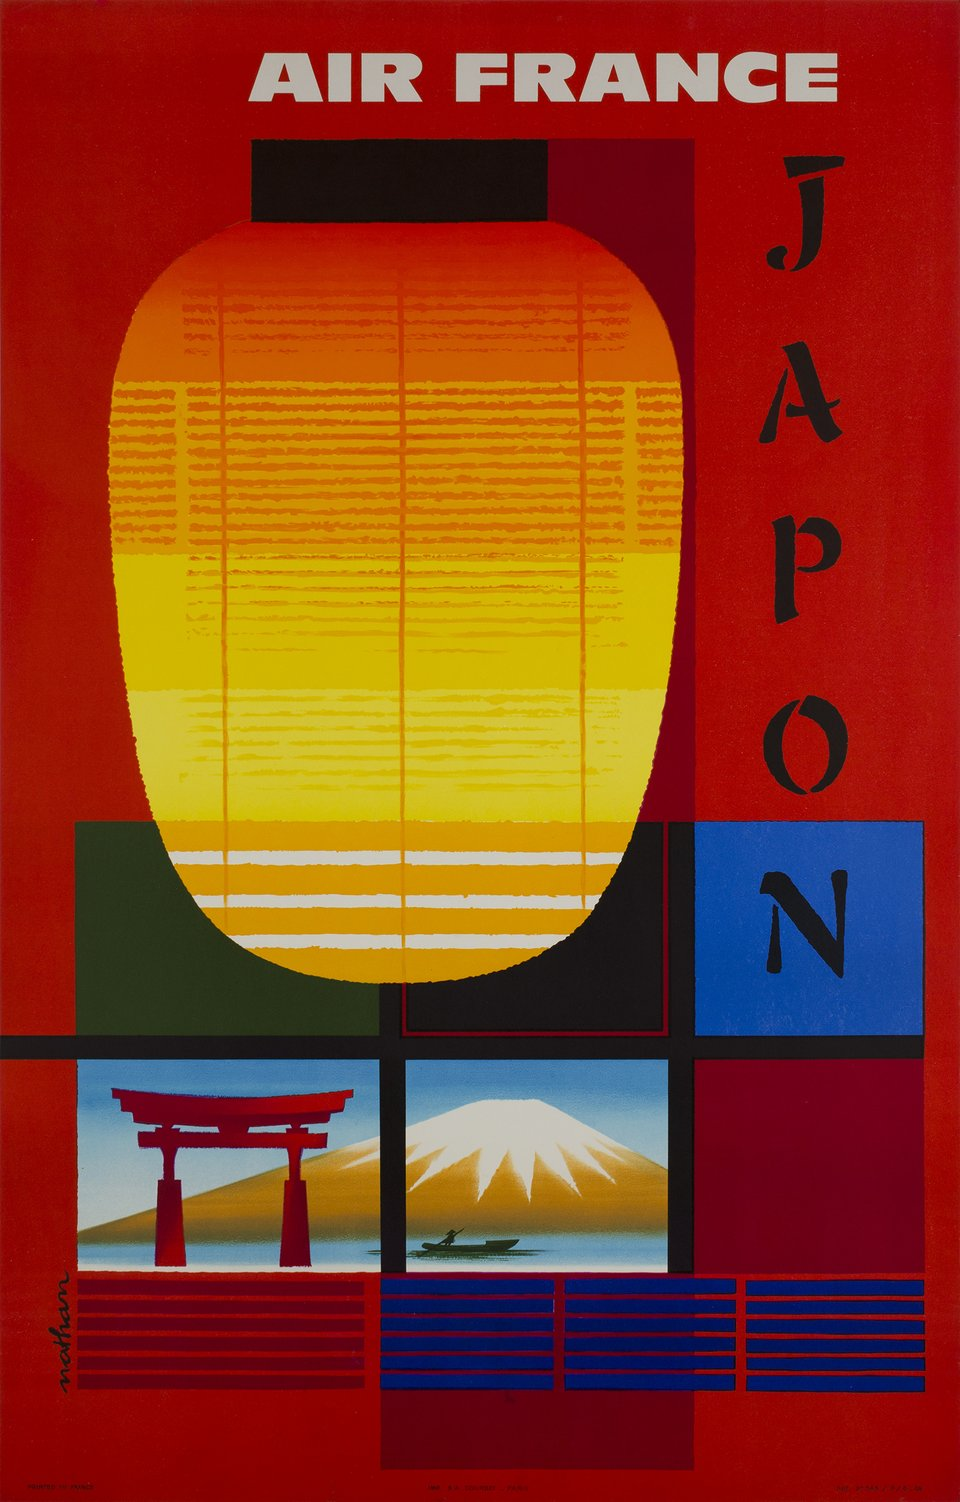 Air France, Japon – Vintage poster – Jacques NATHAN-GARAMOND – 1959